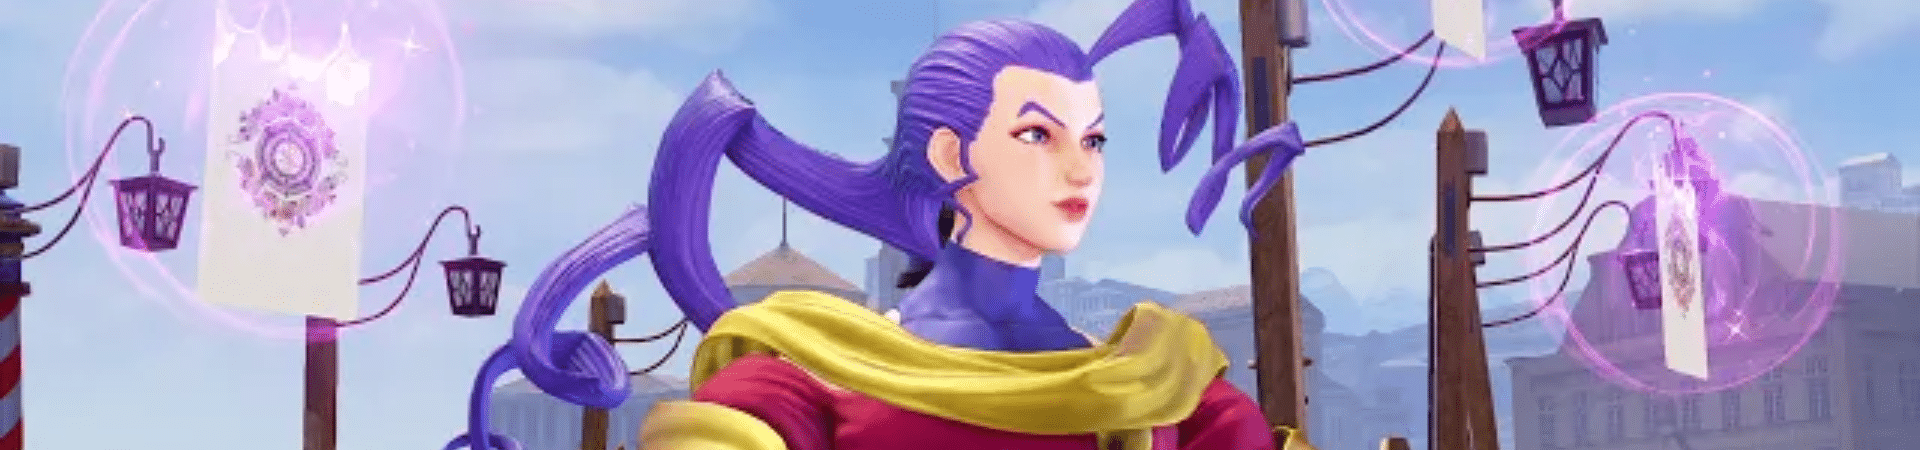 """Rose is an """"appealing character"""" in 'Street Fighter V'. Image: Capcom / Disclosure"""